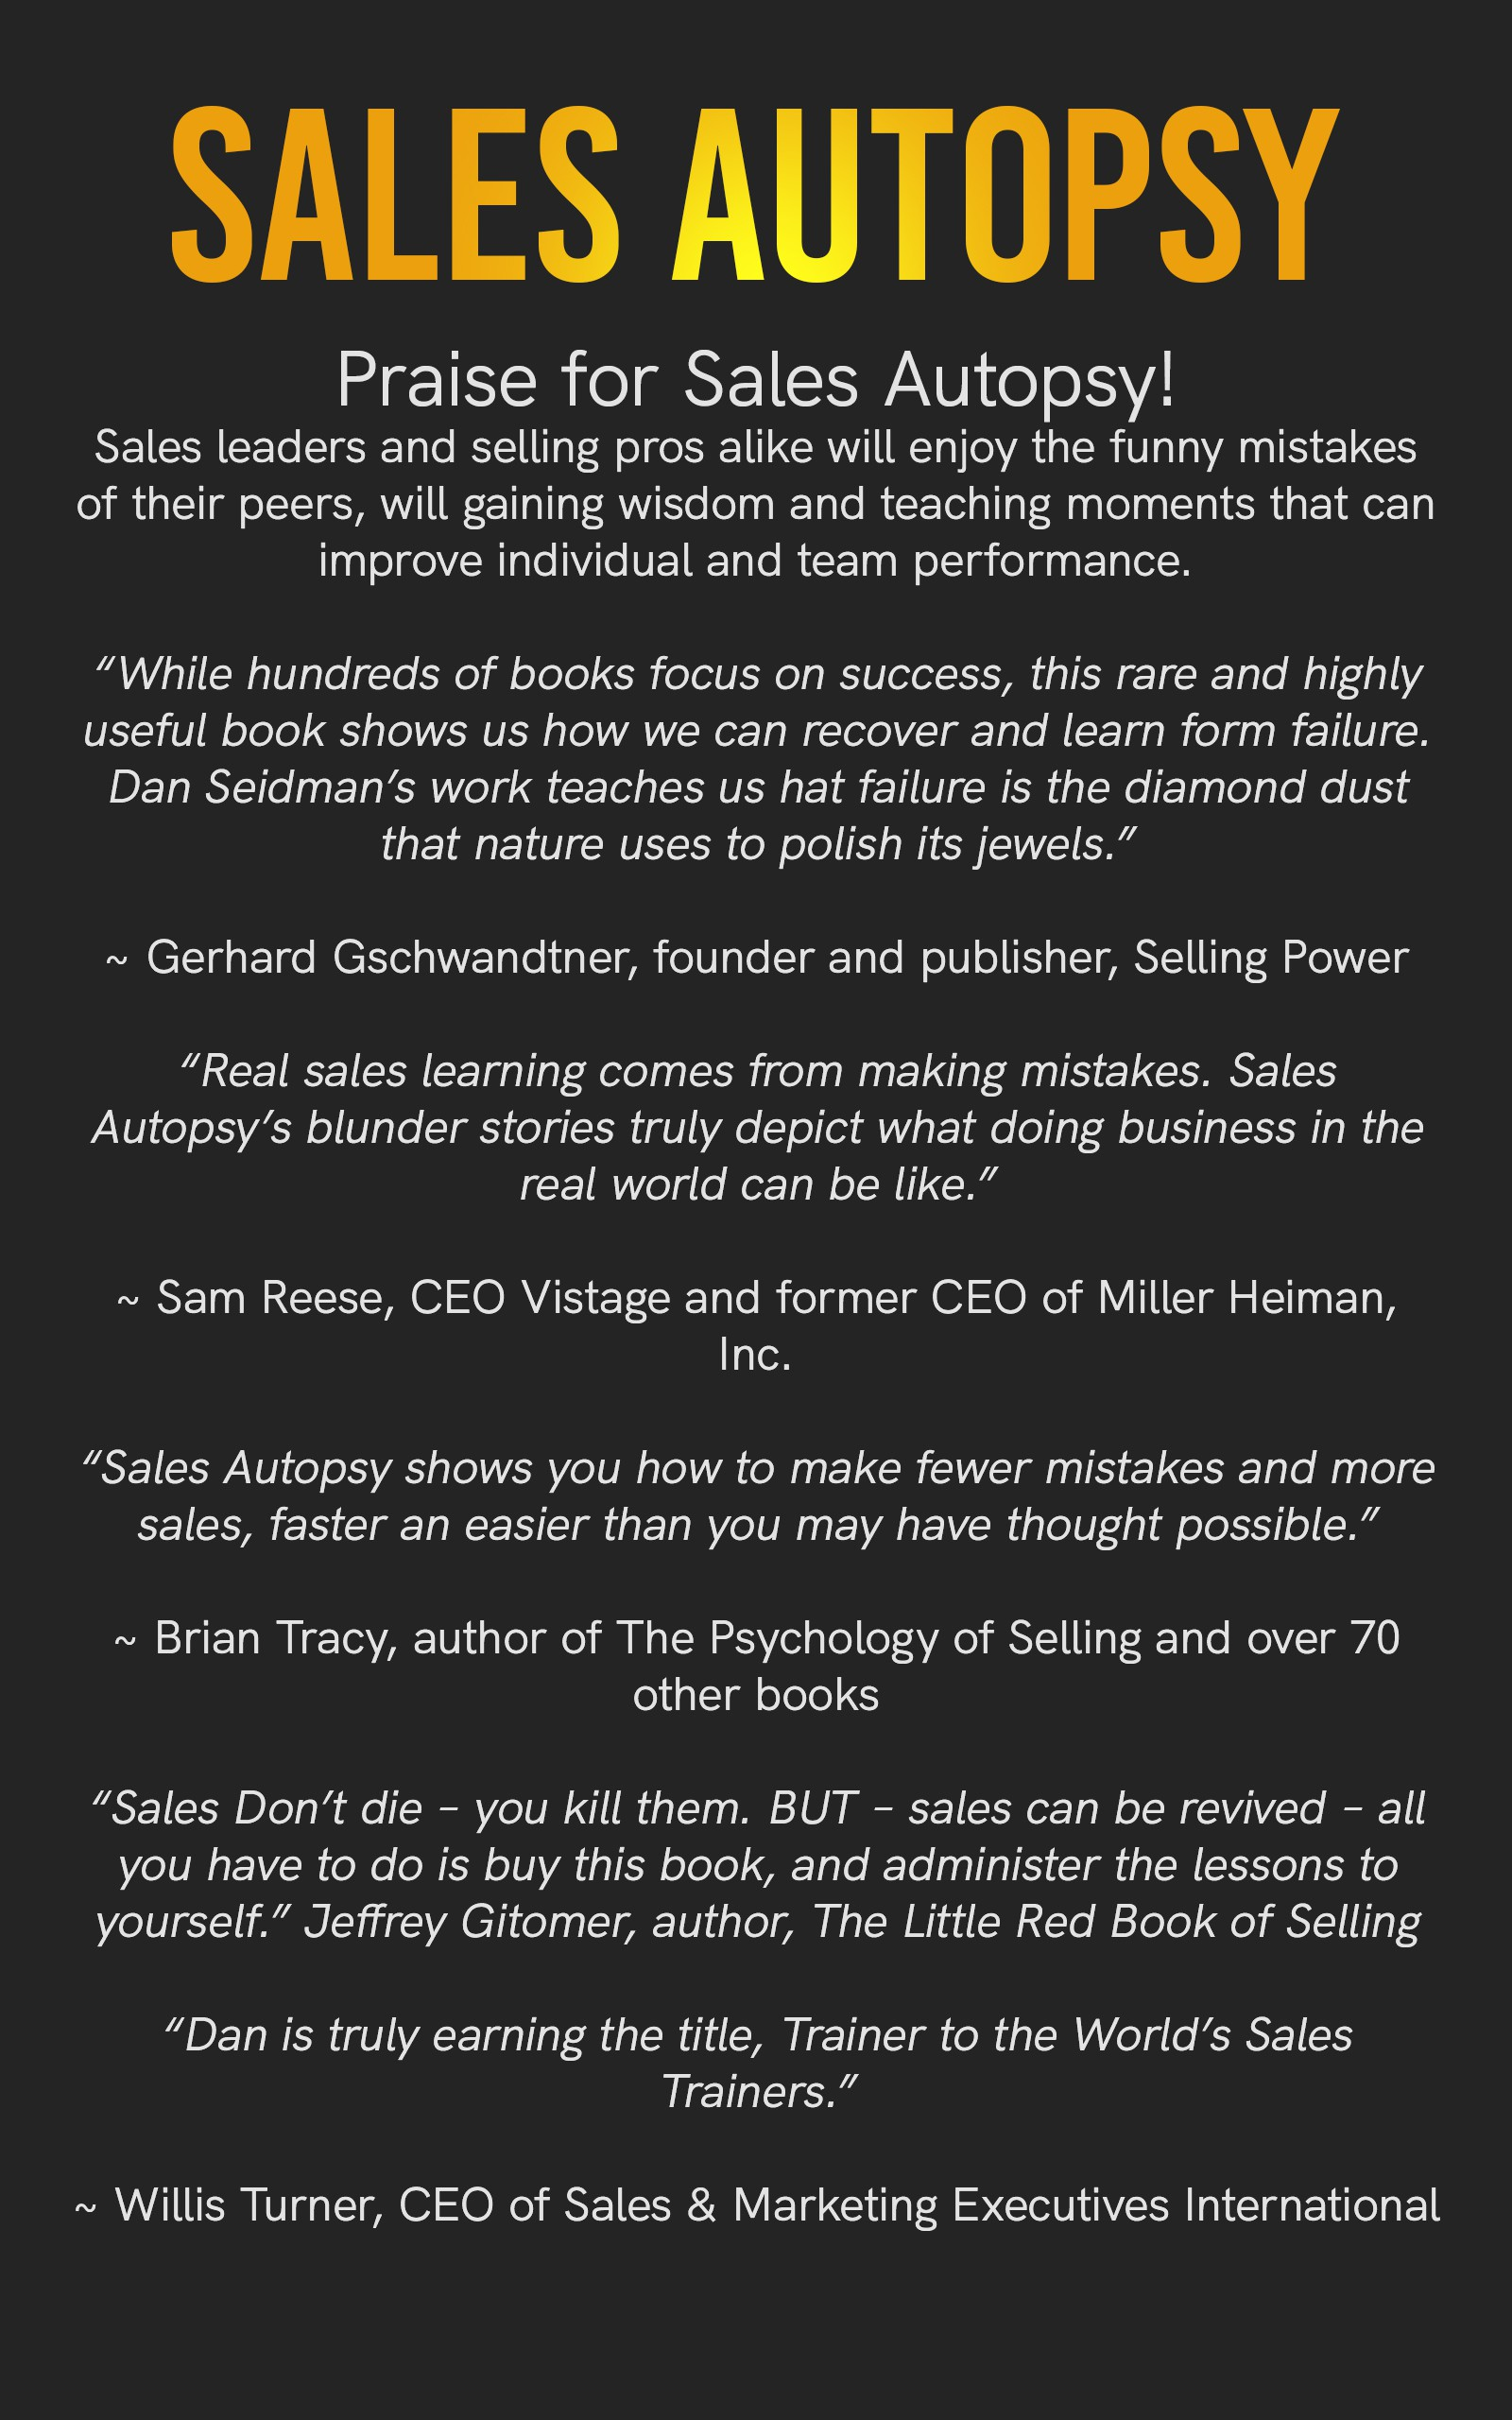 Sales Autopsy! 2nd edition